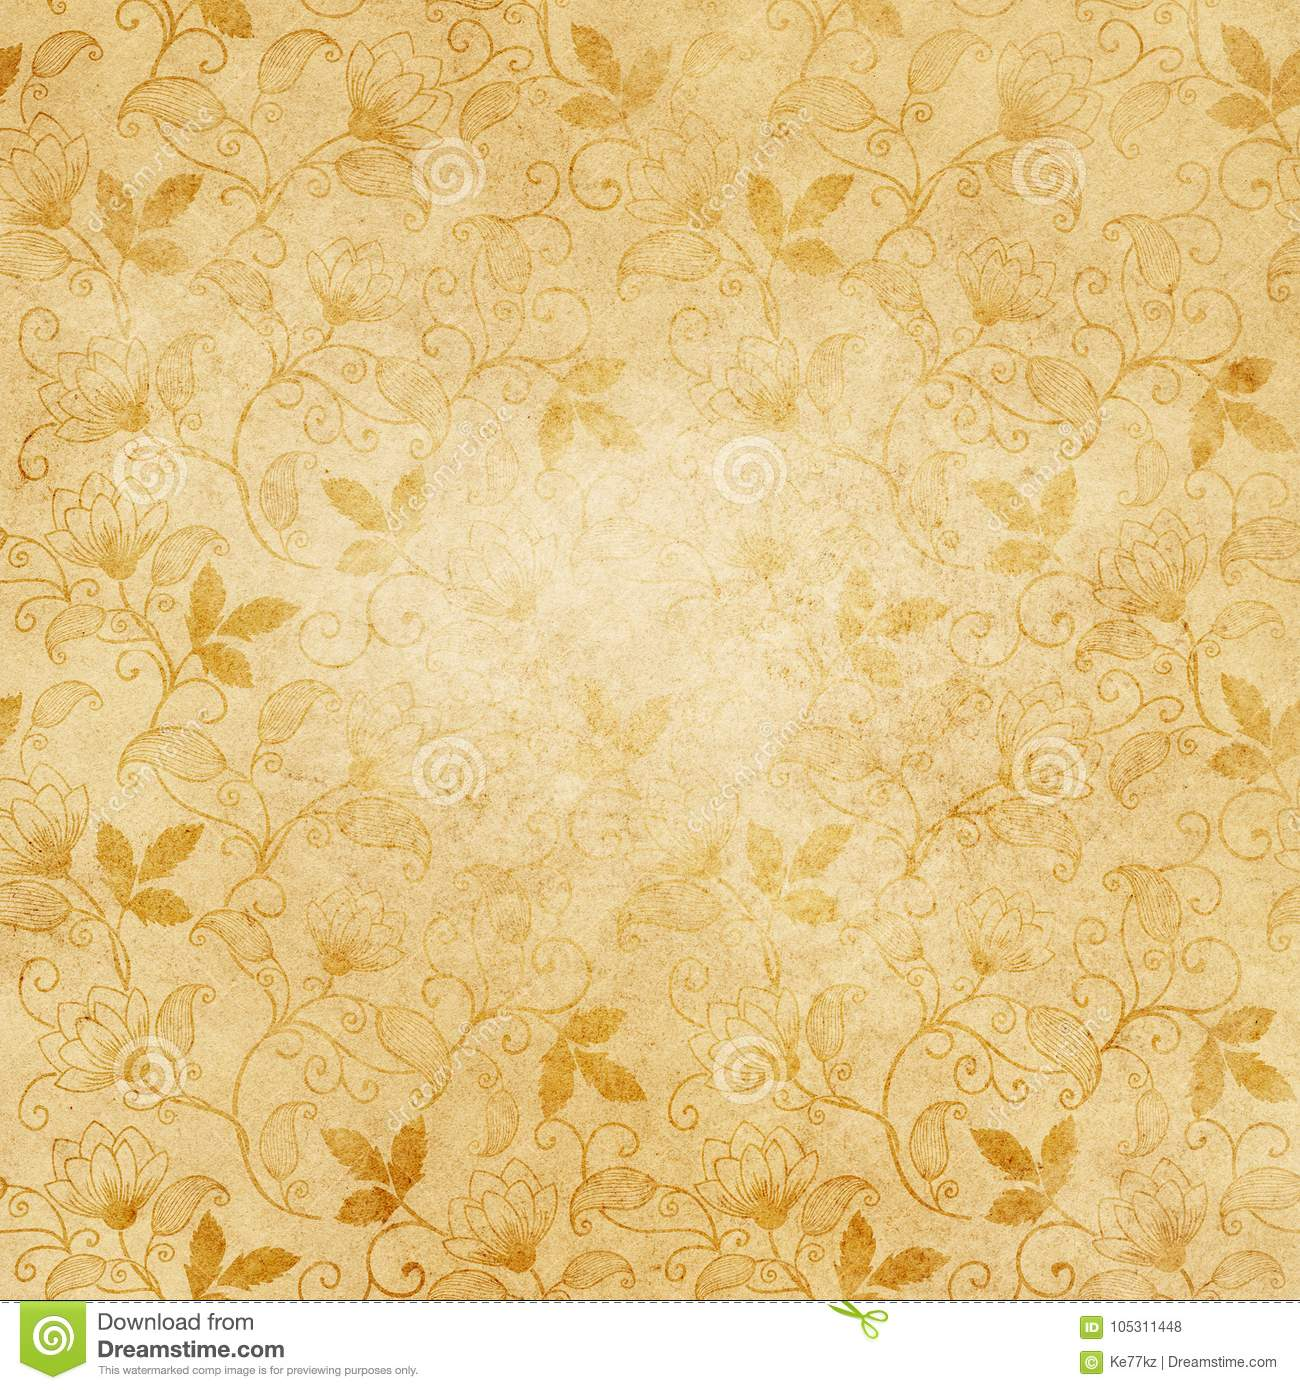 Old Paper Texture With Floral Patterns For Background Stock